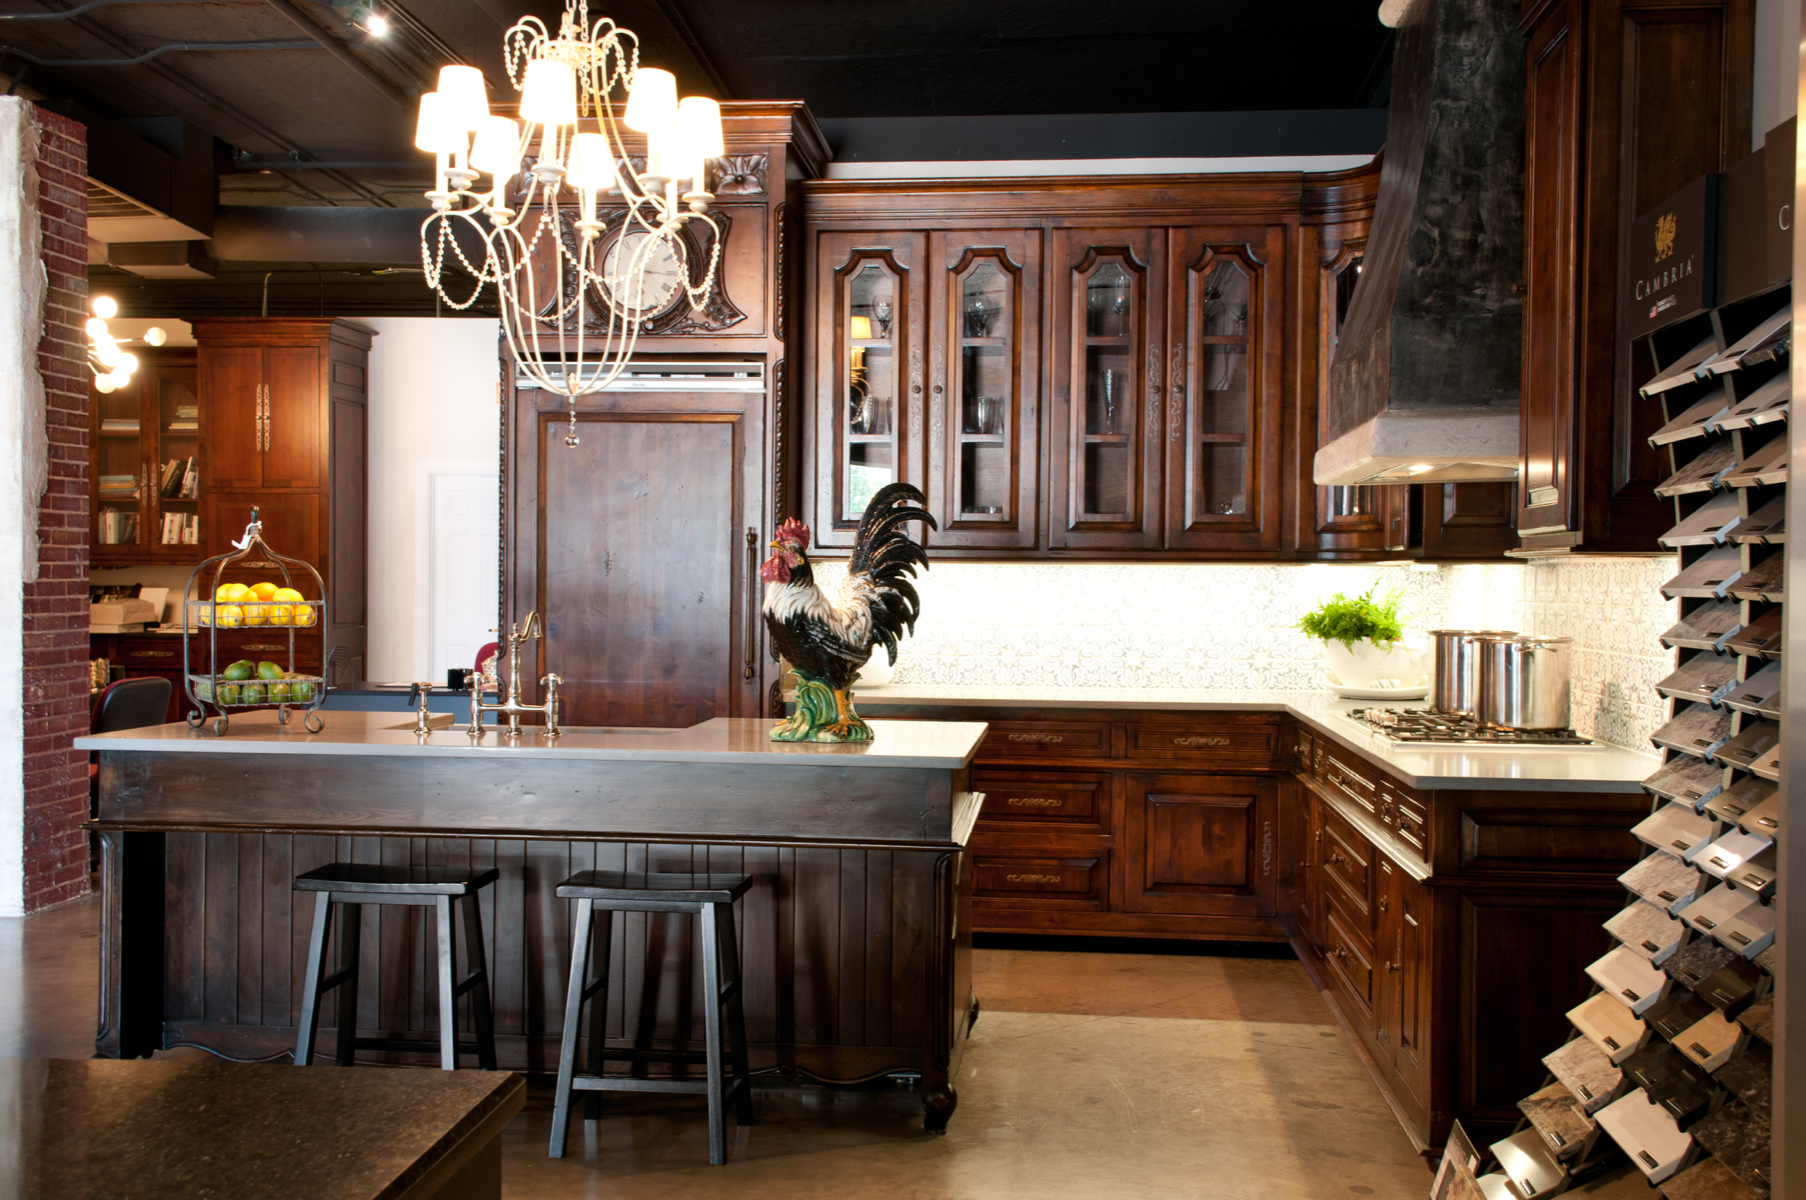 The Fully Custom Traditional Kitchen at Kitchen Concepts